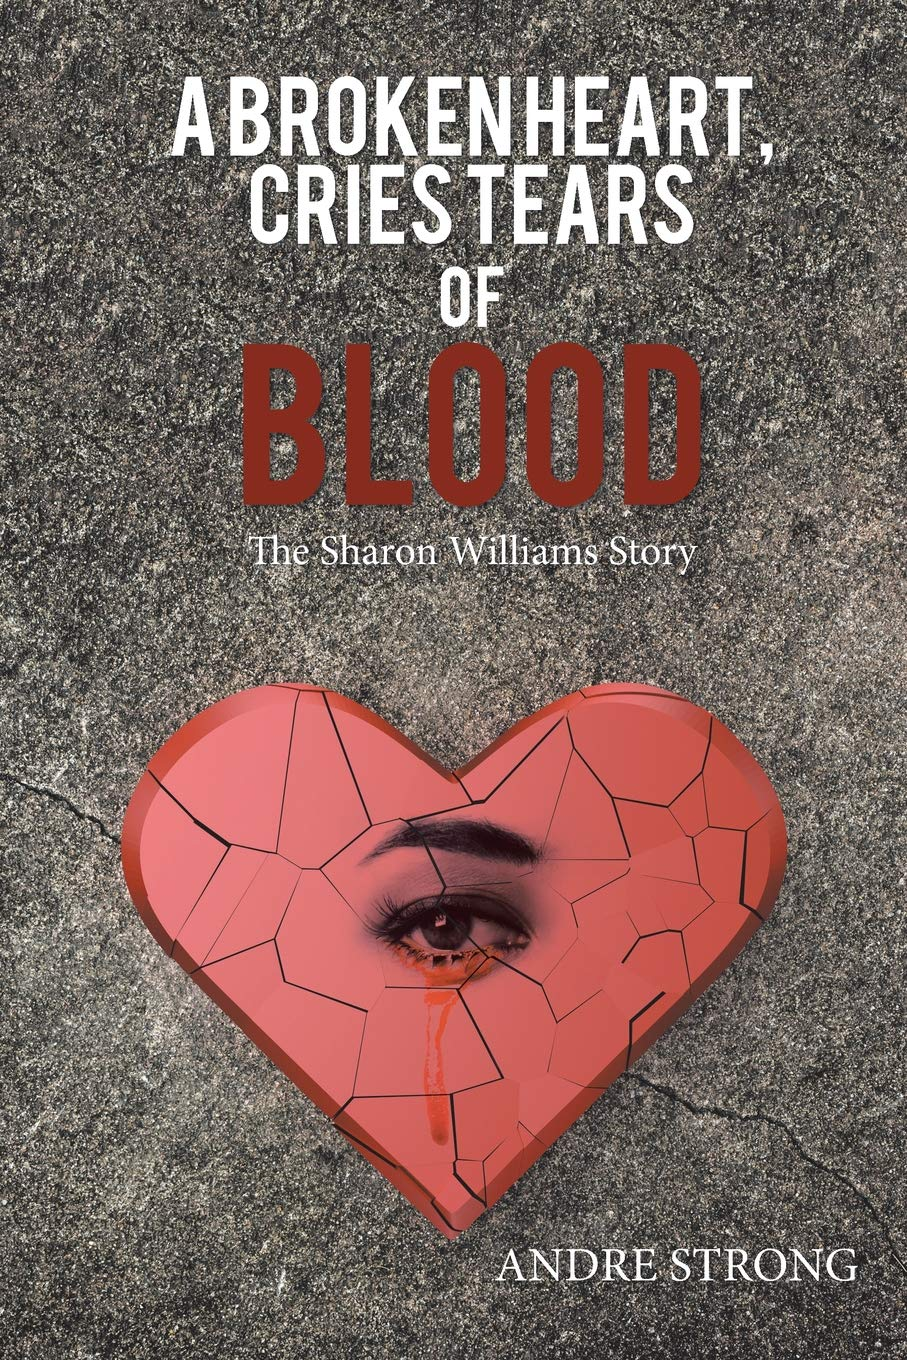 A Broken Heart Cries Tears Of Blood The Sharon Williams Story